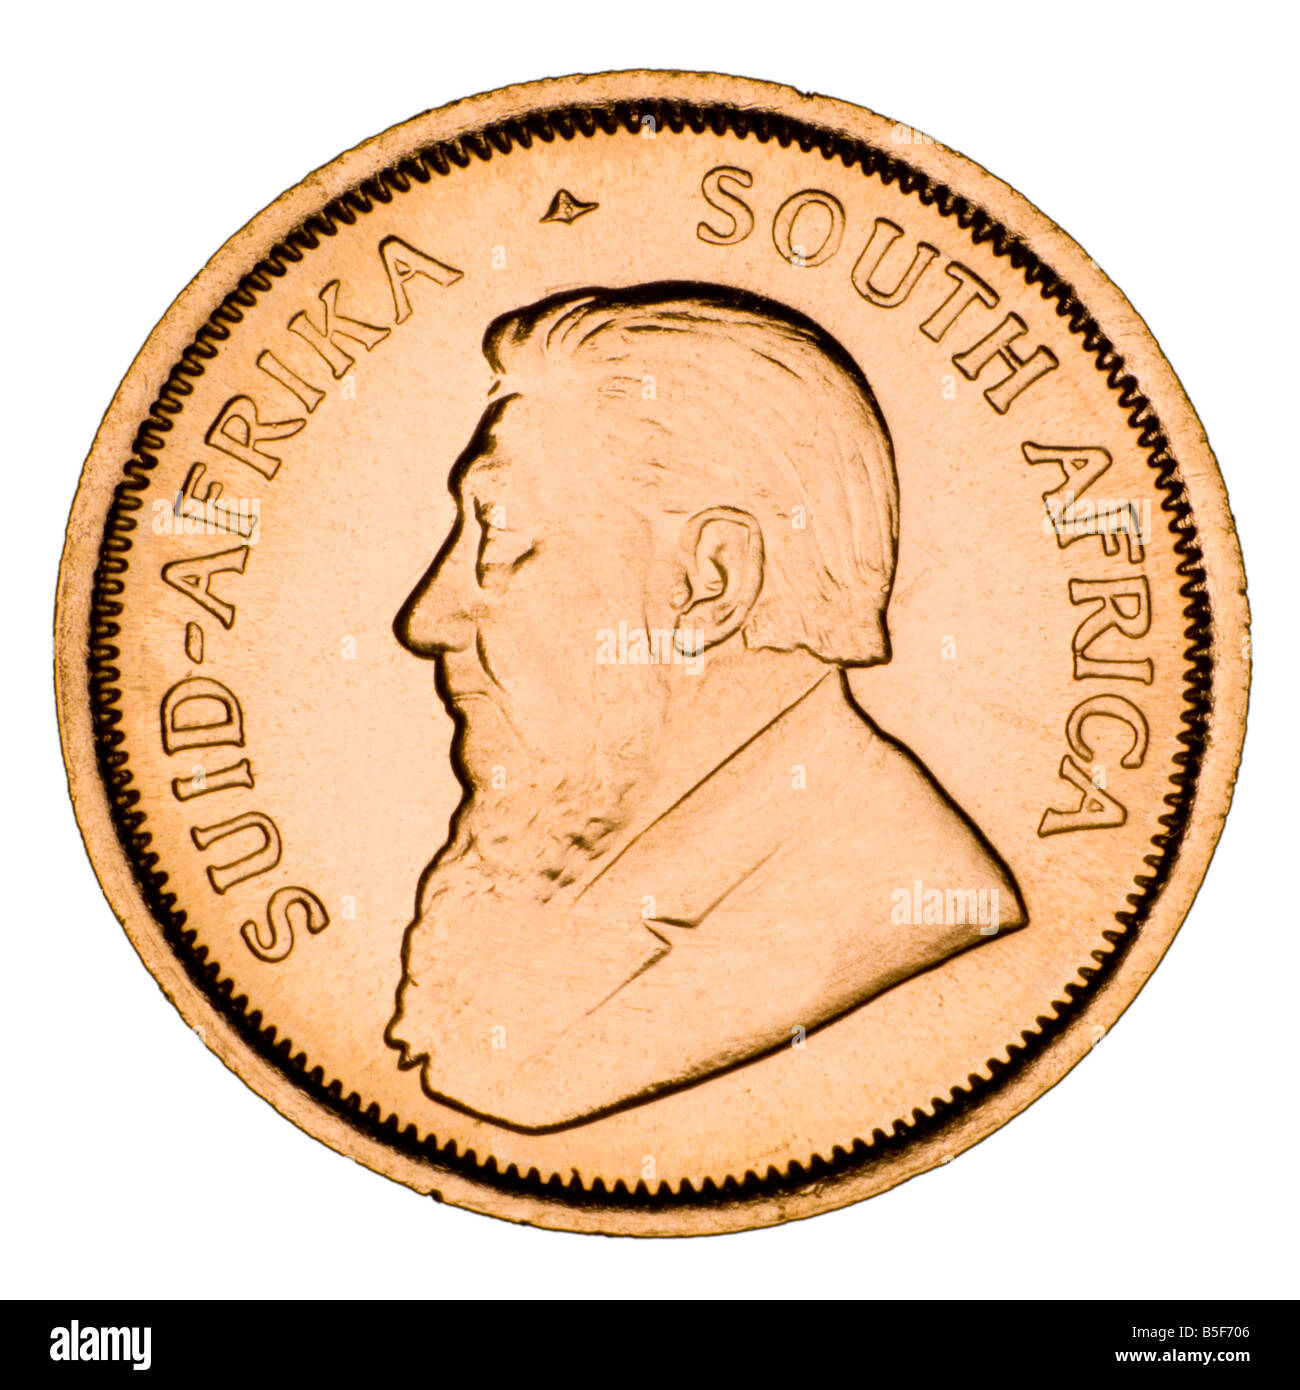 Gold 1/10th Krugerrand coin Obverse - Stock Image